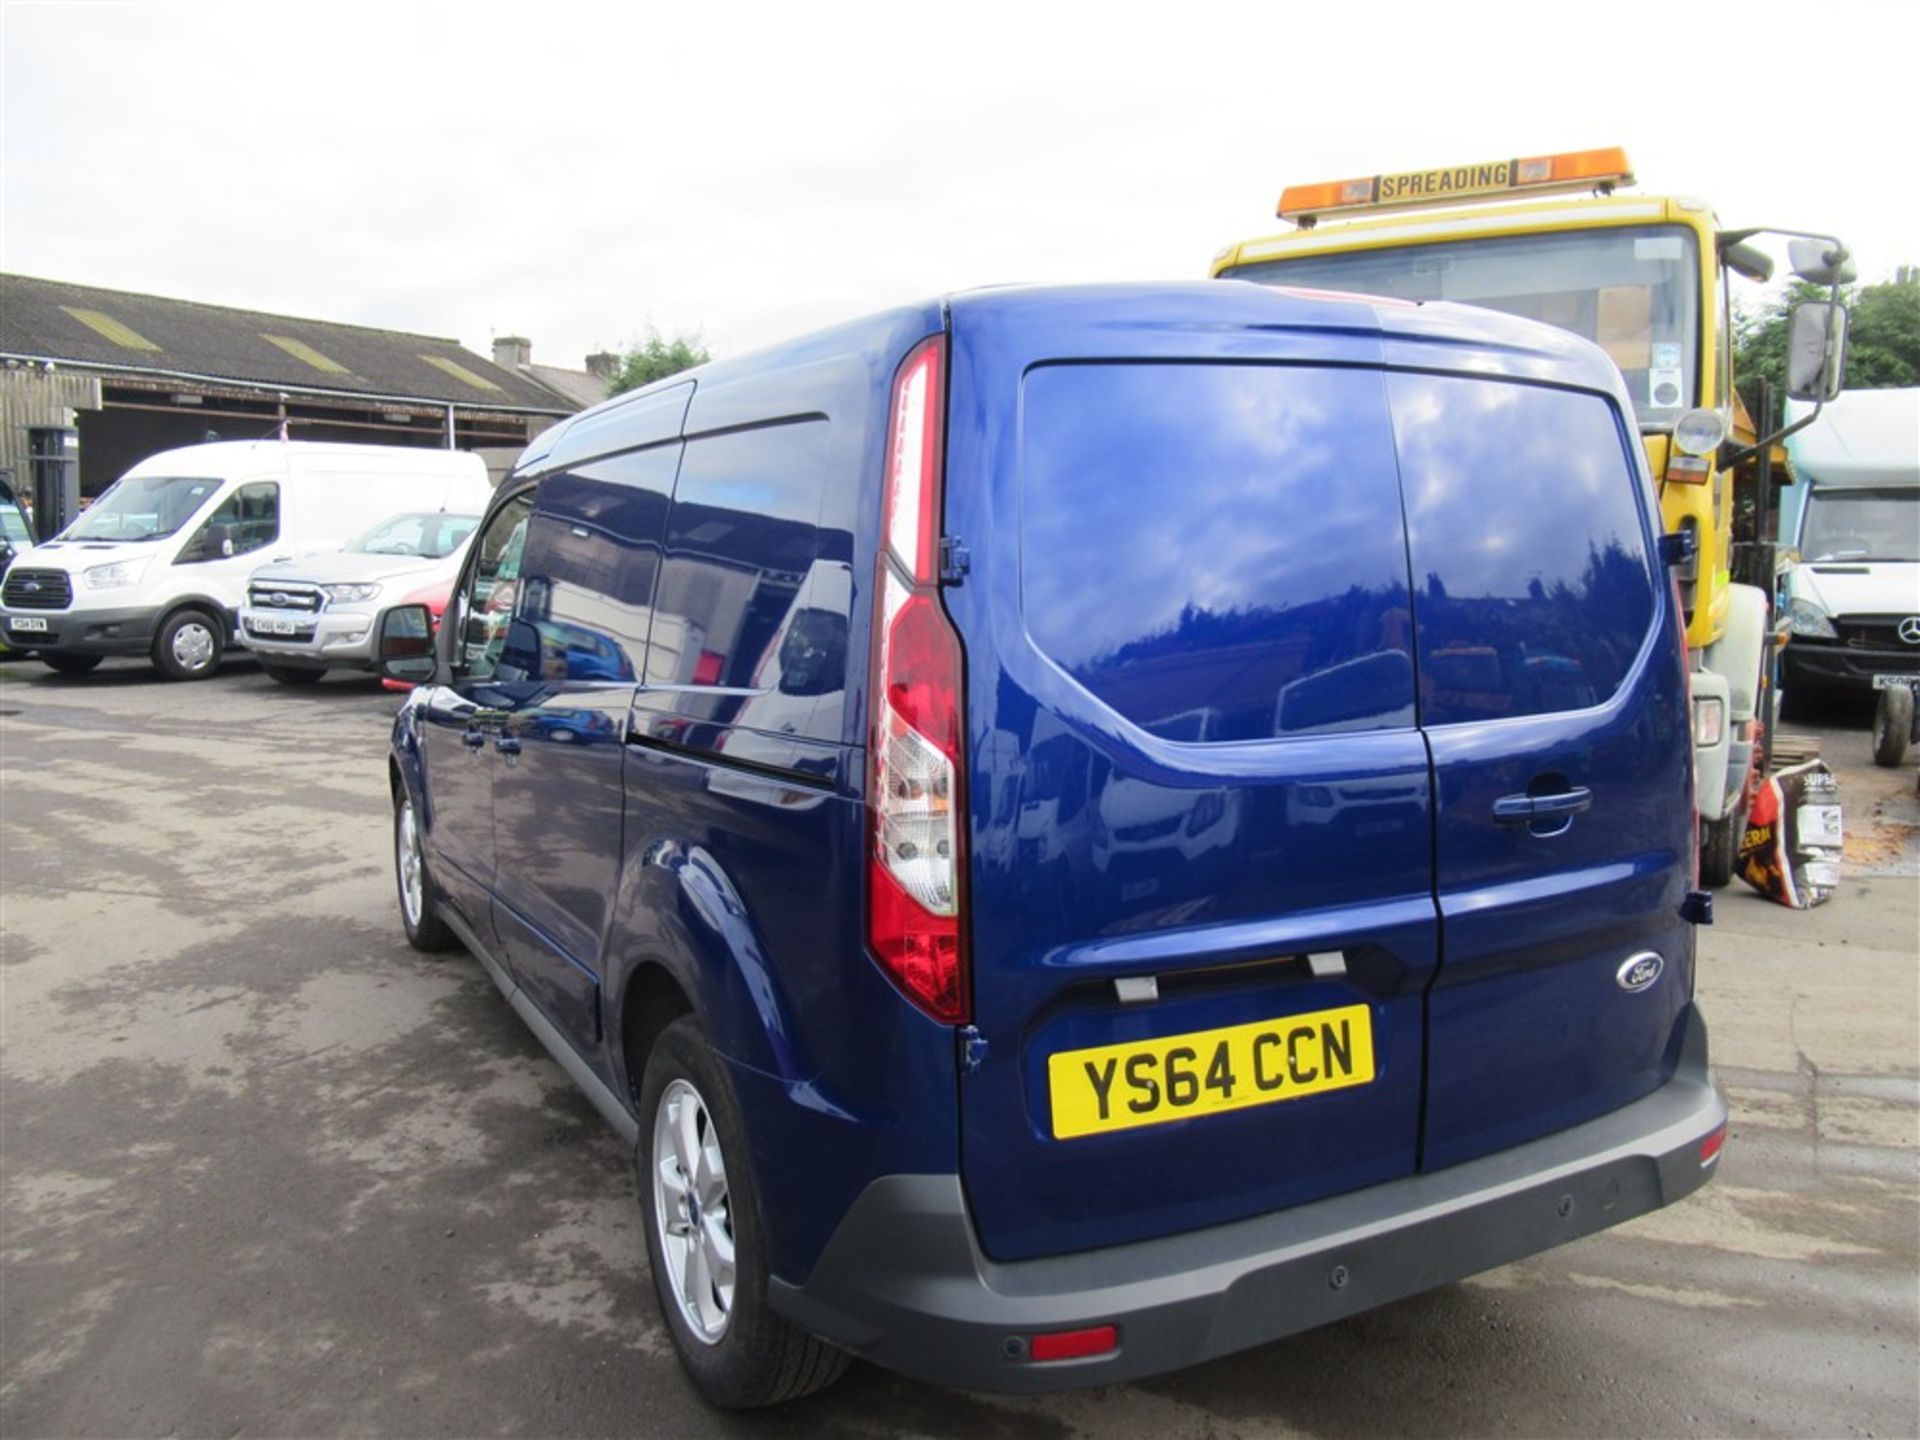 64 reg FORD TRANSIT CONNECT 240 LIMITED, 1ST REG 12/14, 128144M WARRANTED, V5 HERE, 1 OWNER FROM NEW - Image 3 of 7